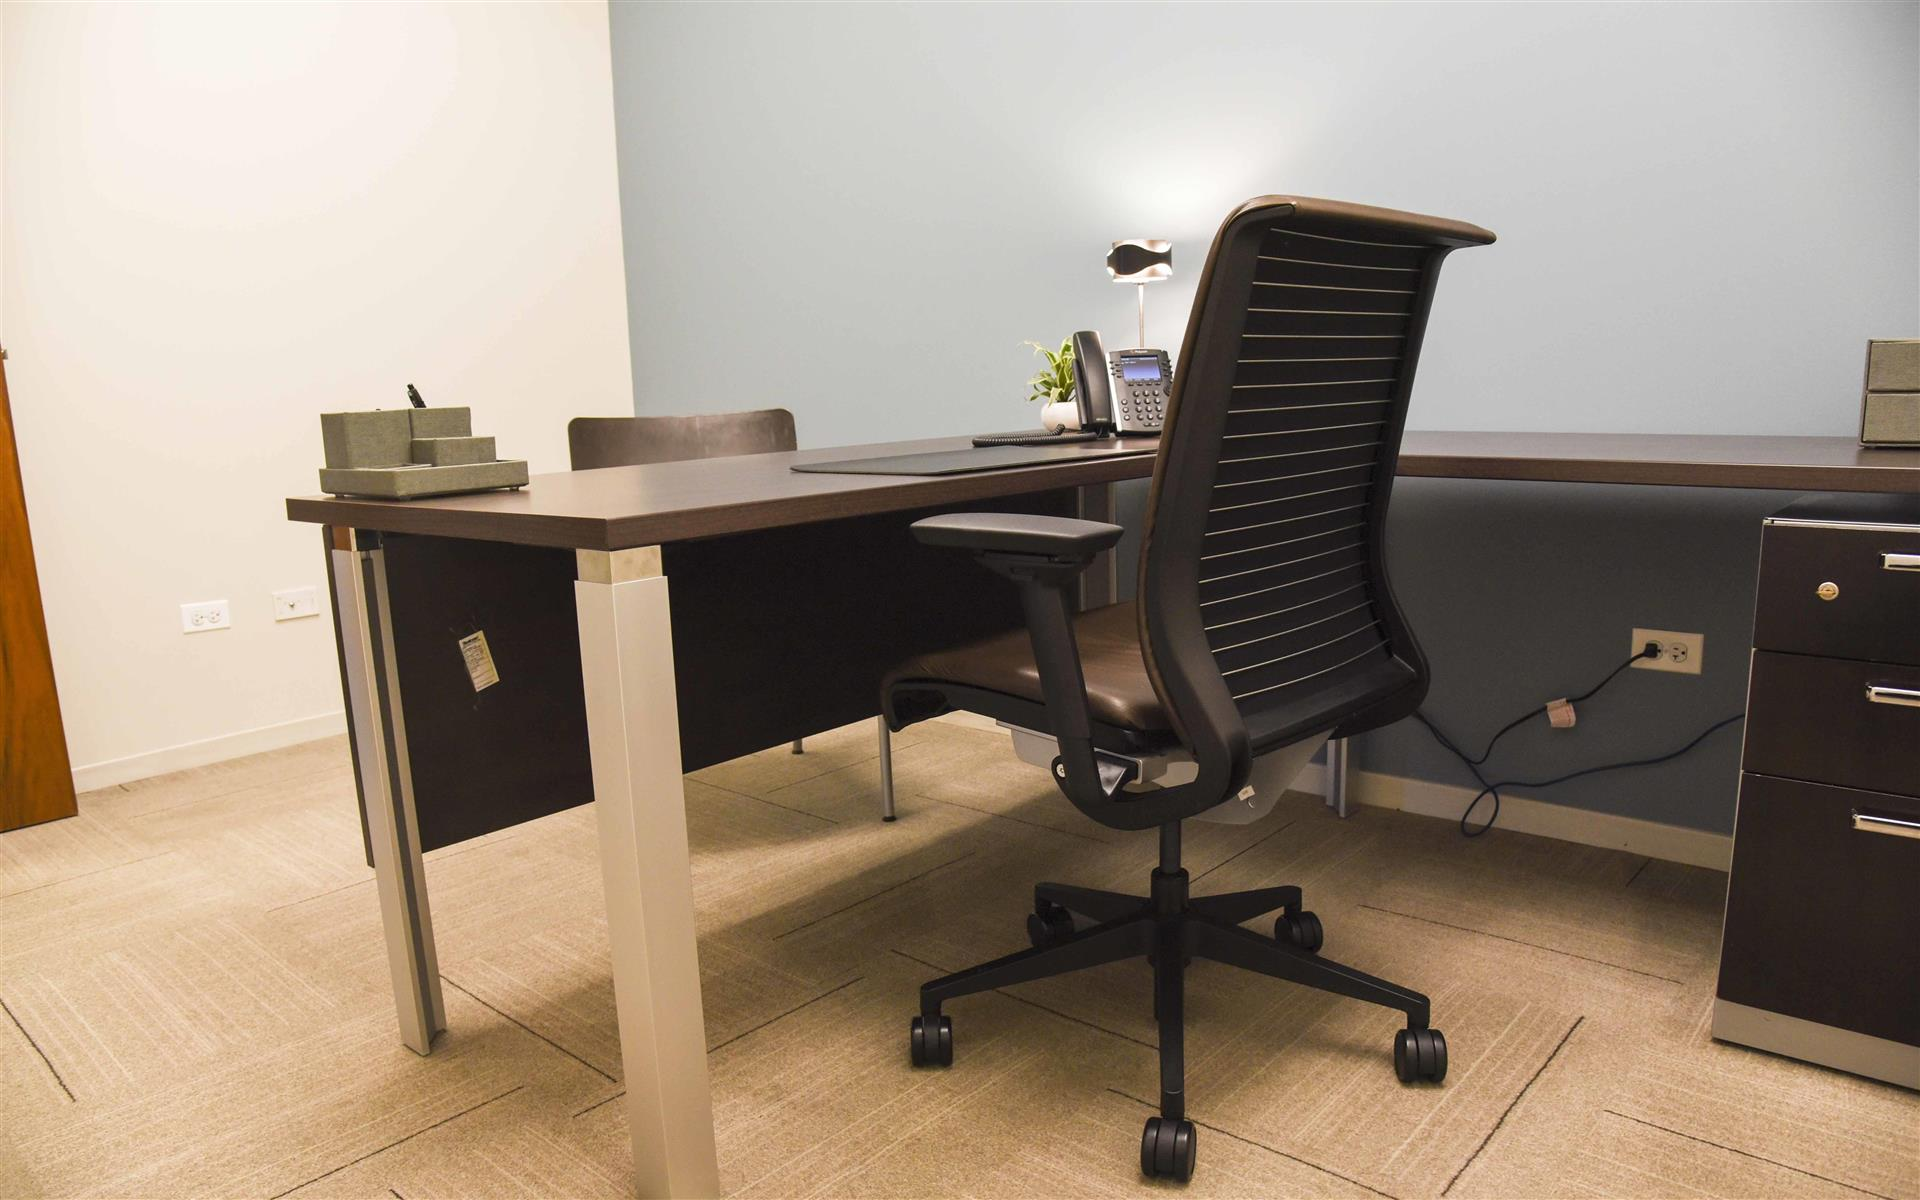 Work Better Chicago - The Willis Tower - Private Office for 1-3